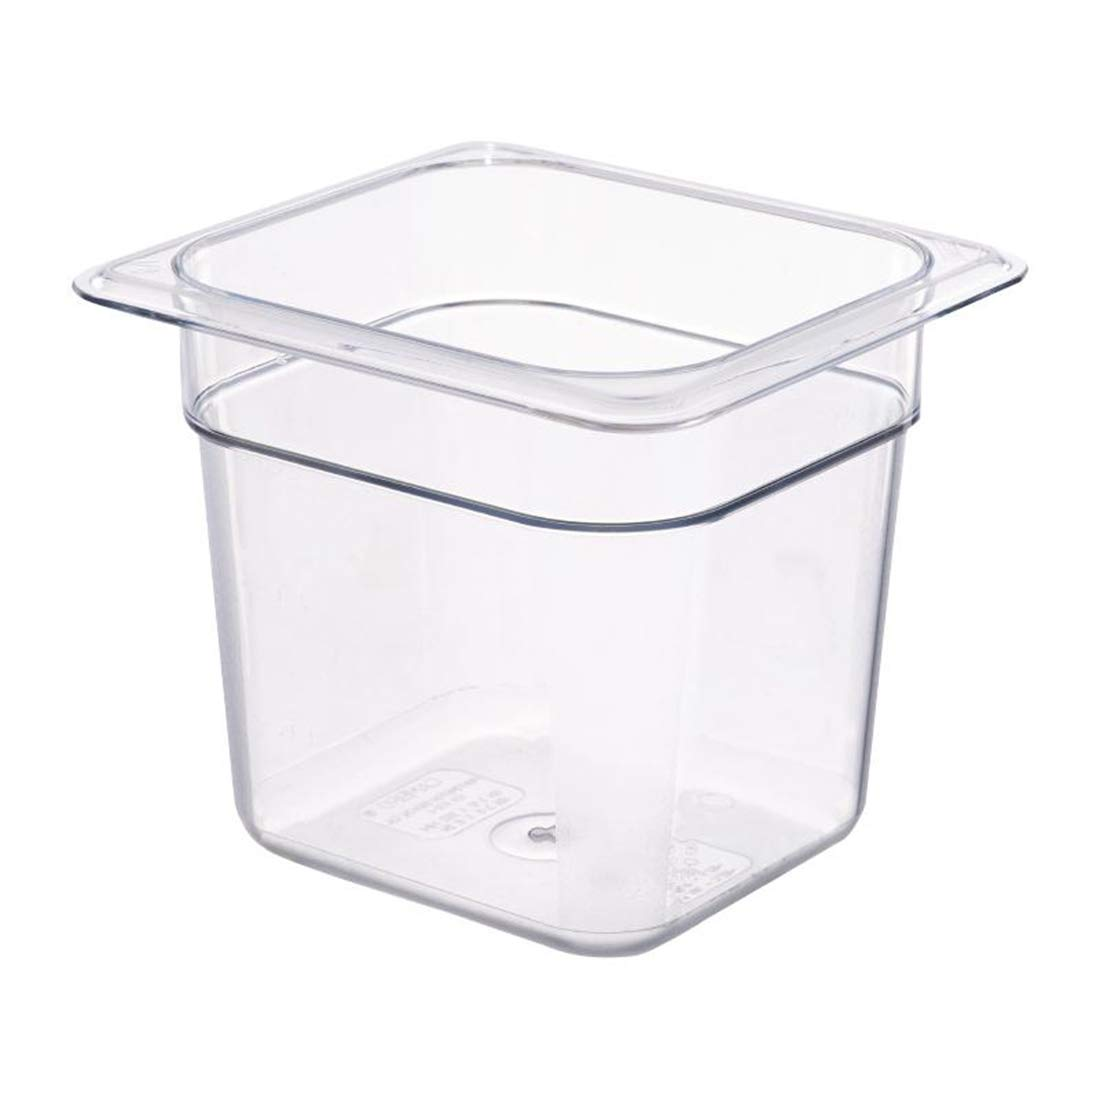 Cambroのセット3 Square FoodストレージContainers with Lids、1 /6サイズクリアポリカーボネート食品パン – 6